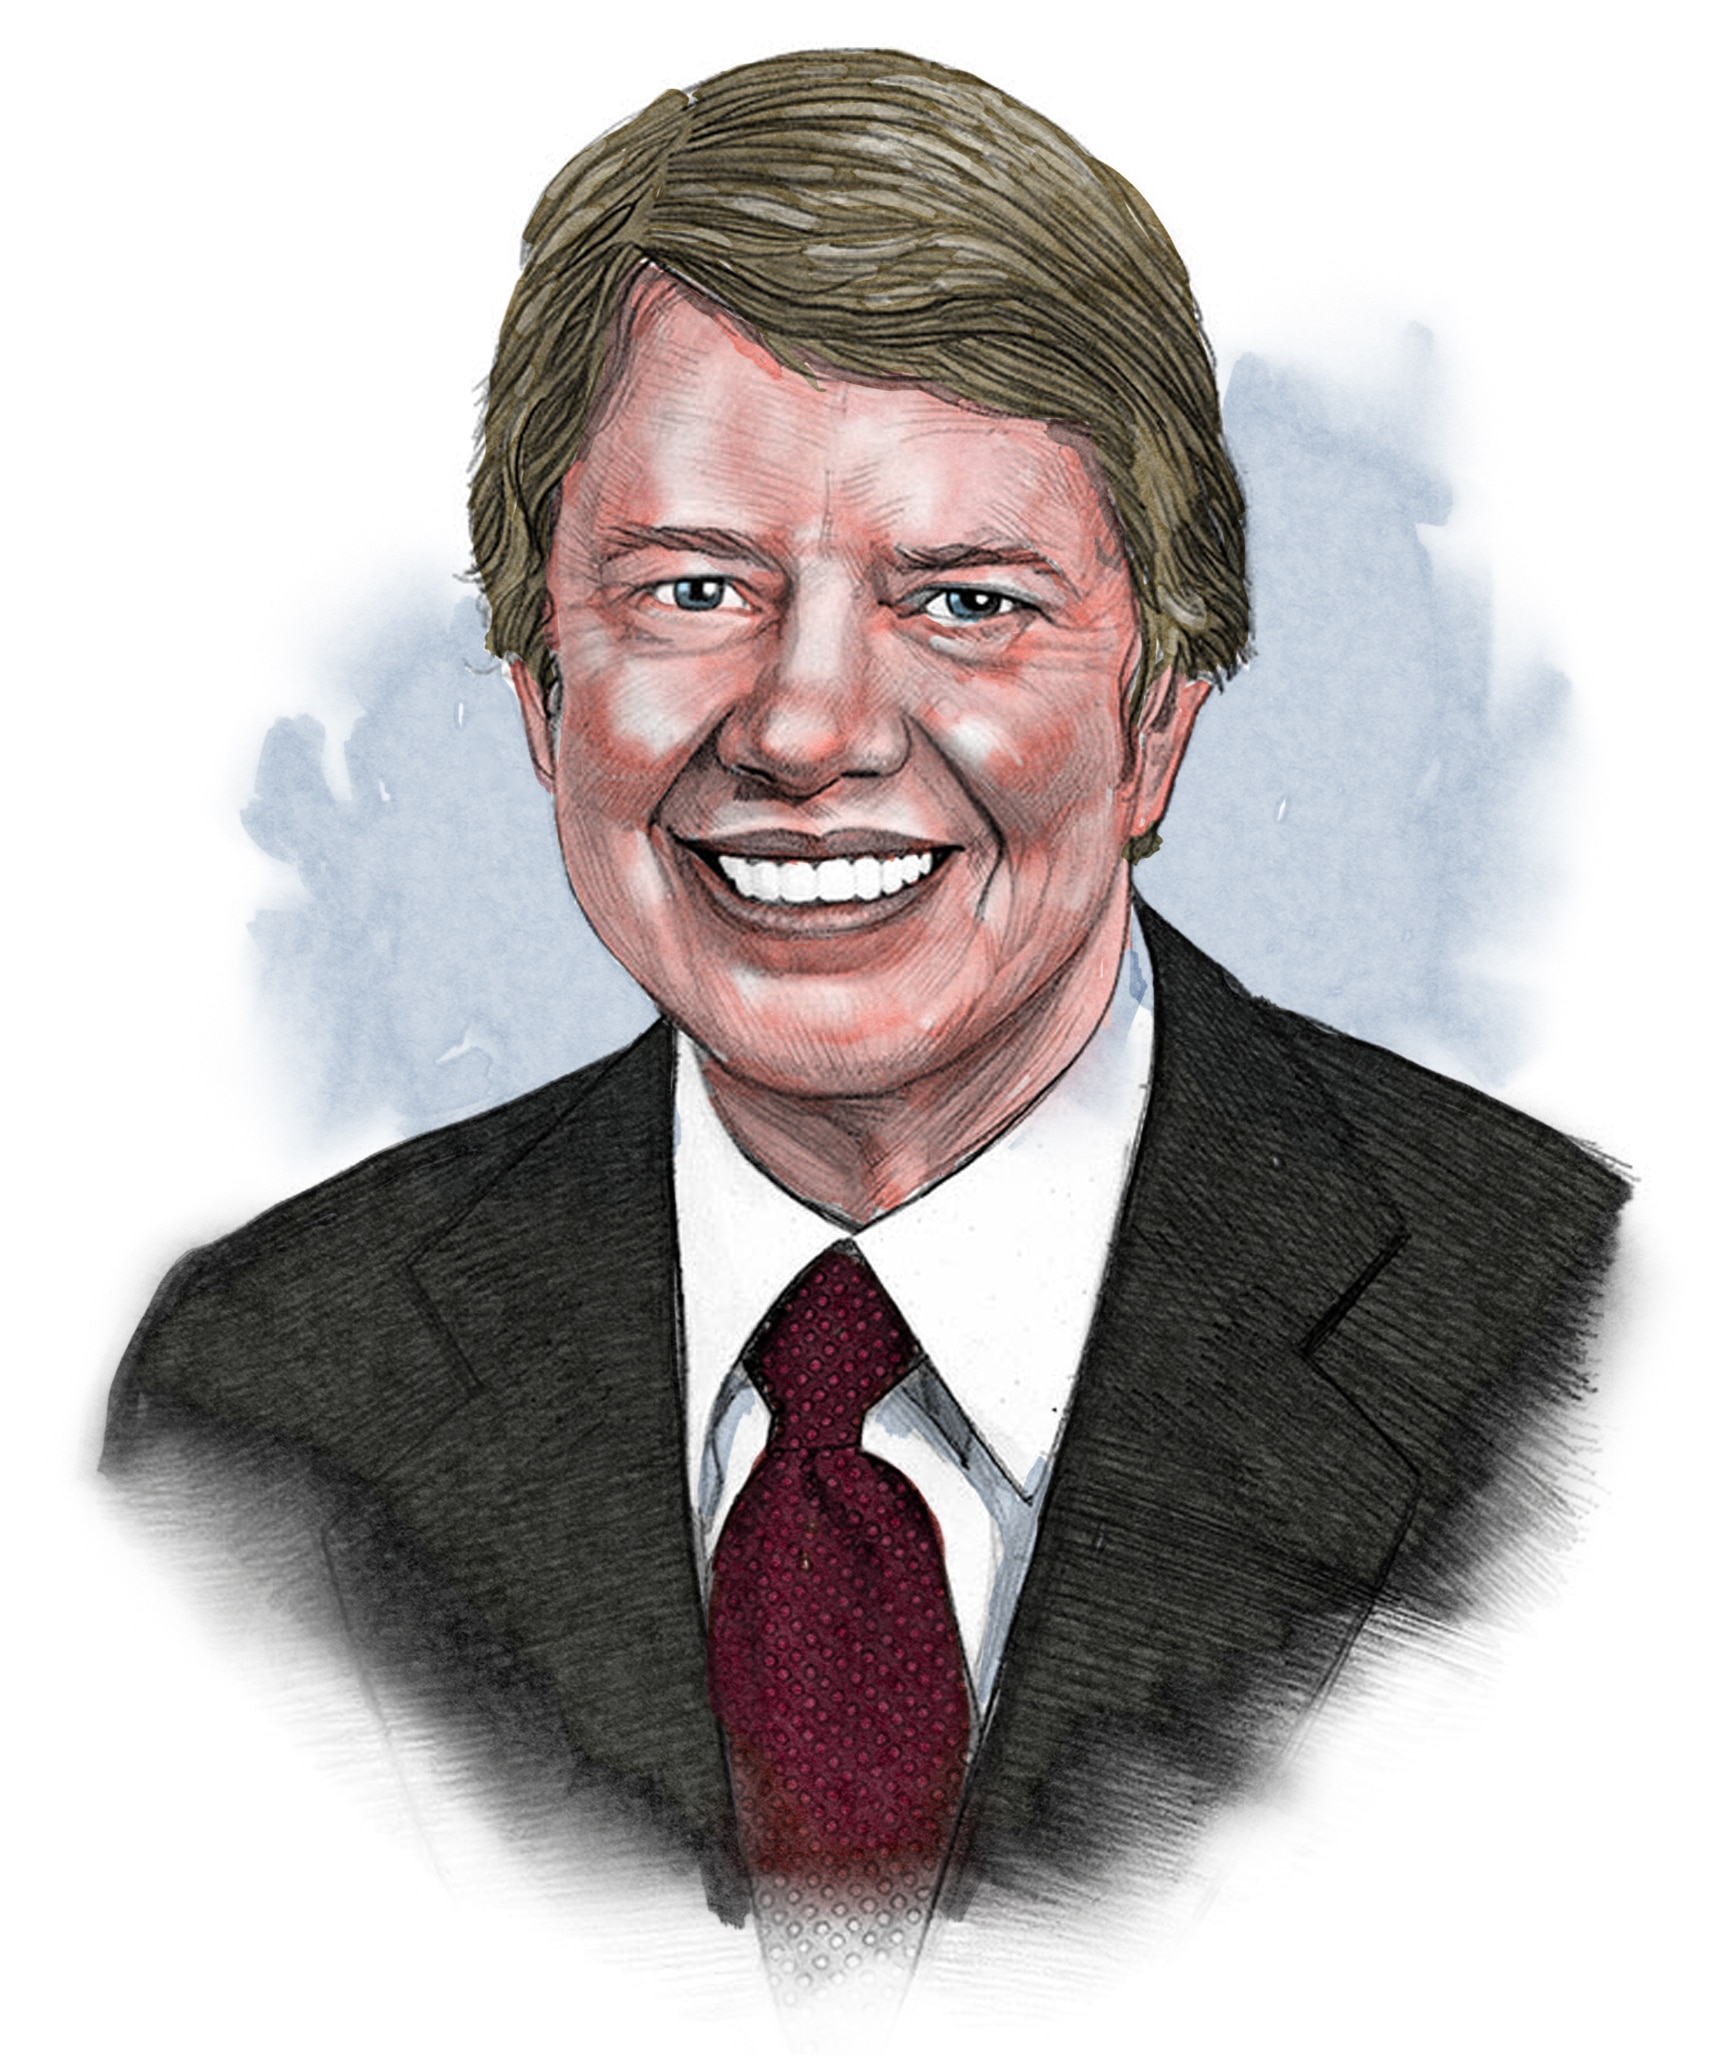 Illustrated image of President Carter (© siteseen.info)